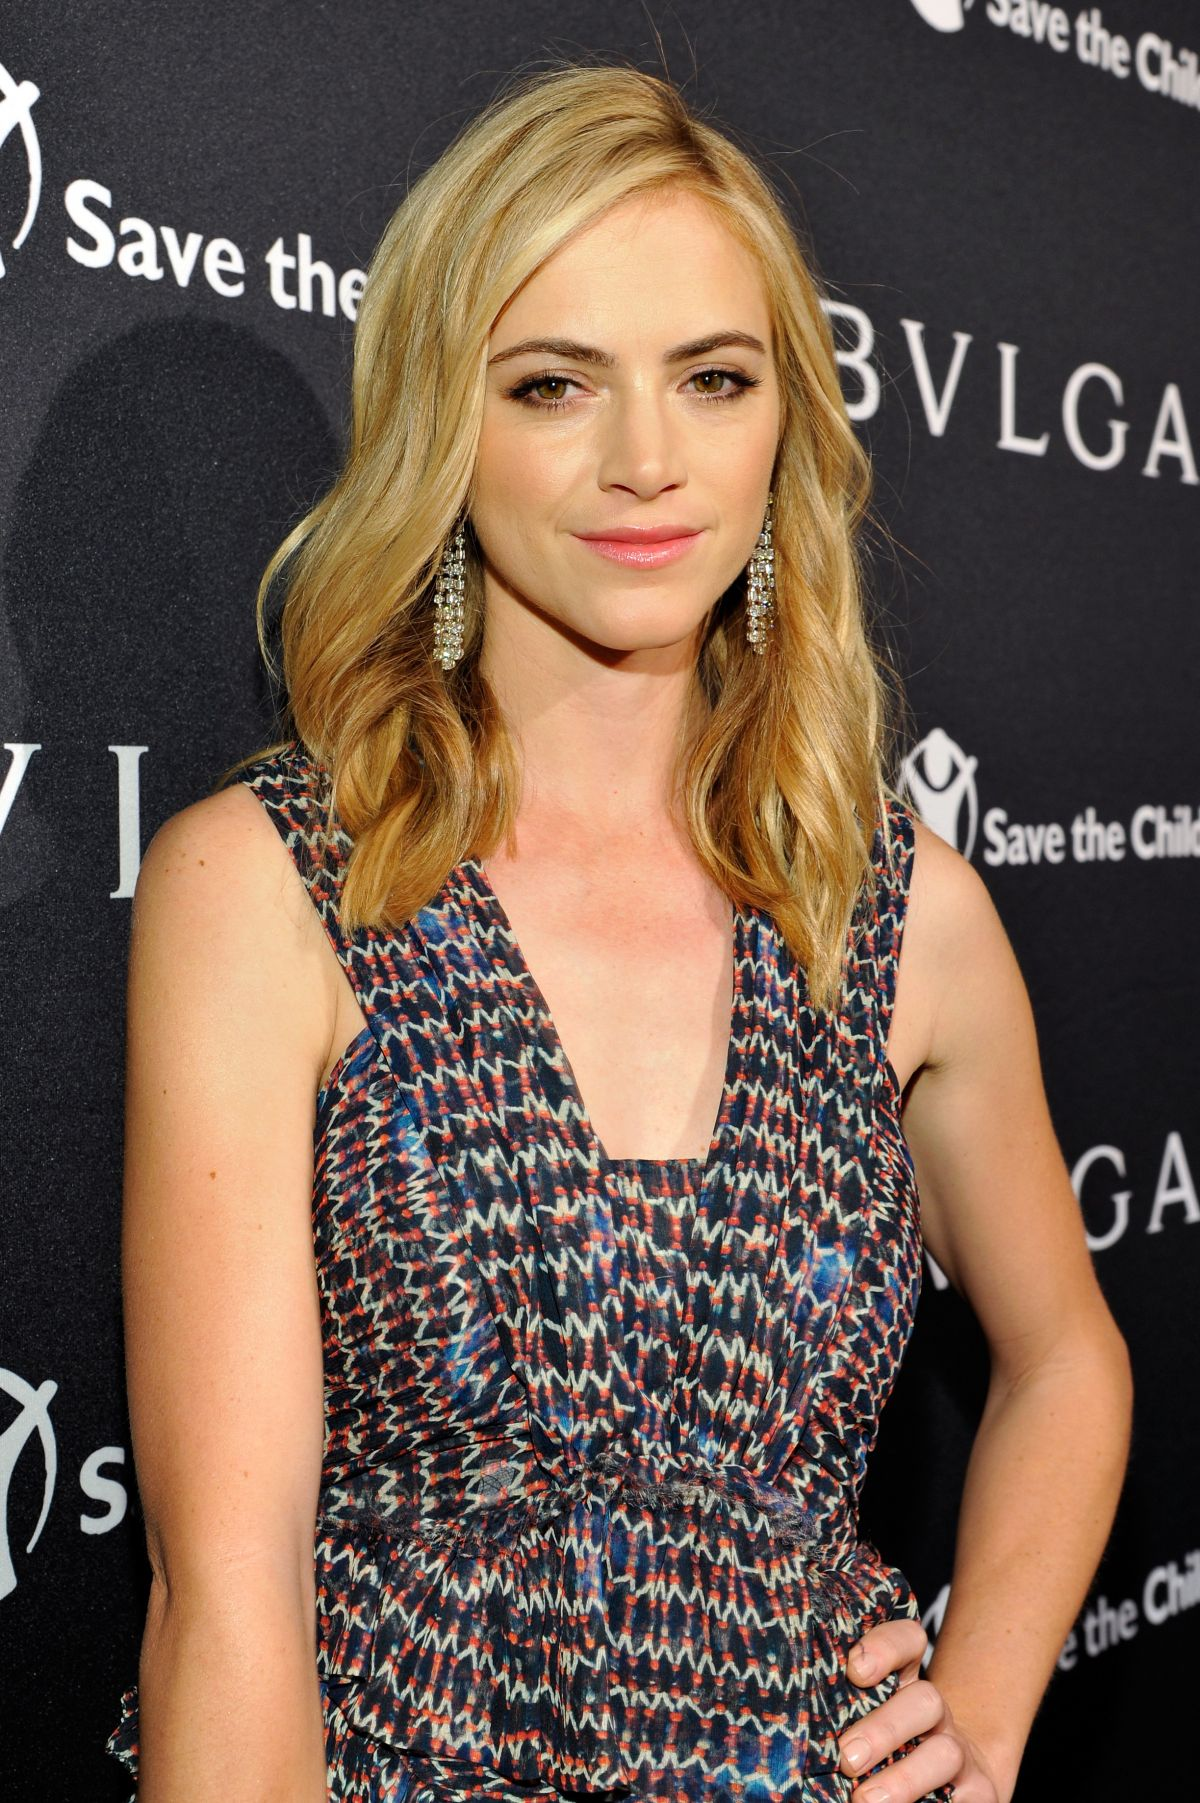 emily wickersham bioemily wickersham parents, emily wickersham gif hunt, emily wickersham instagram, emily wickersham listal, emily wickersham, emily wickersham ncis, emily wickersham imdb, emily wickersham wiki, emily wickersham twitter, emily wickersham facebook, emily wickersham i am number four, emily wickersham age, emily wickersham bio, emily wickersham measurements, emily wickersham eyebrows, emily wickersham bikini, emily wickersham net worth